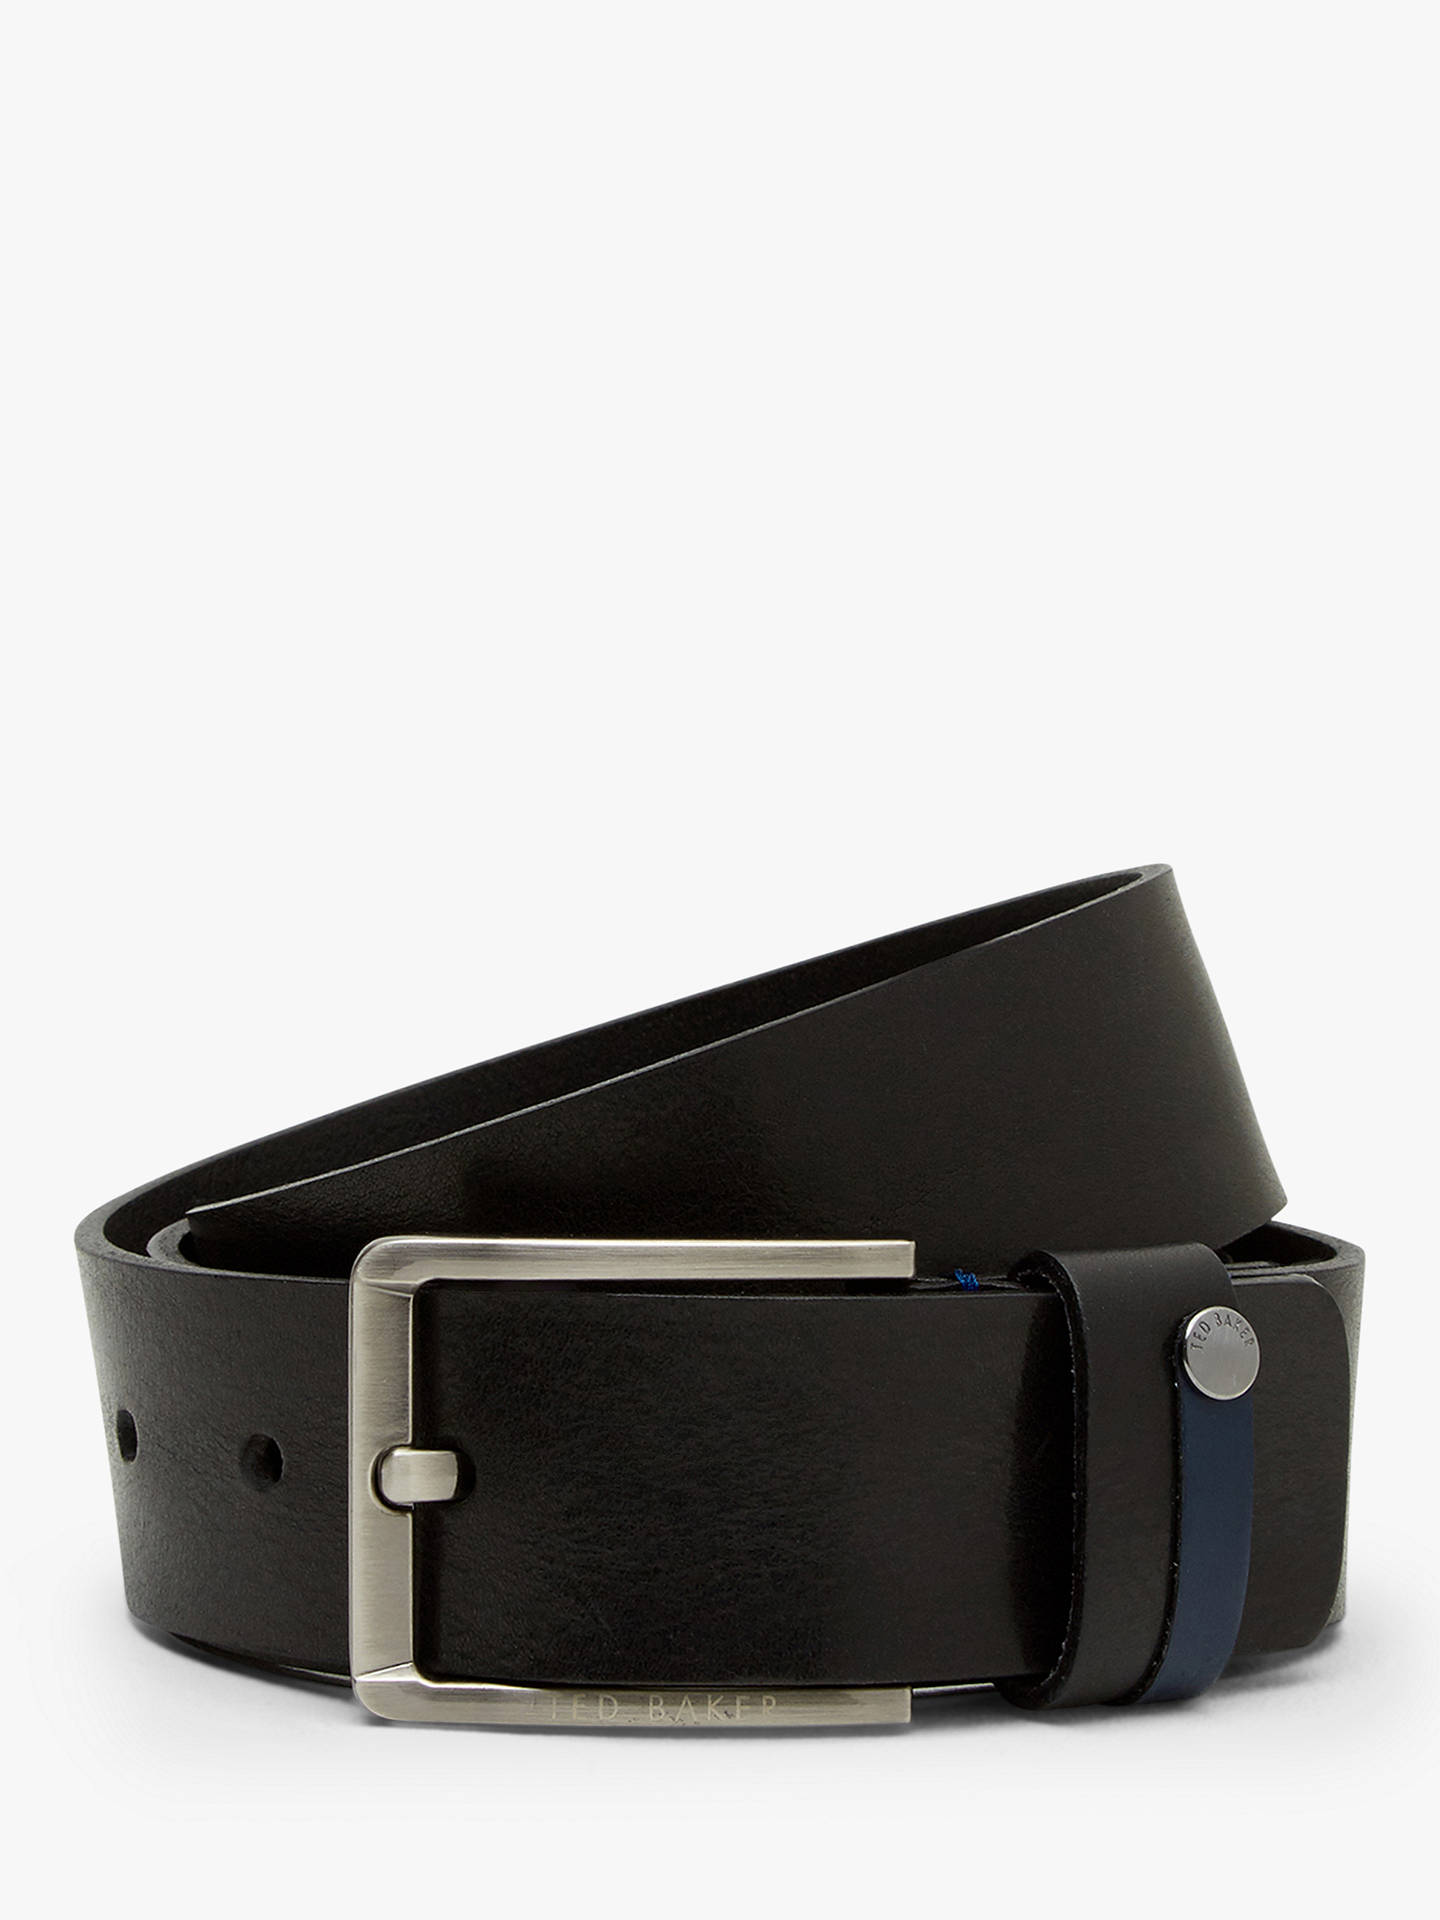 Buy Ted Baker Keepsak Contrast Detail Leather Belt, Black, S Online at johnlewis.com